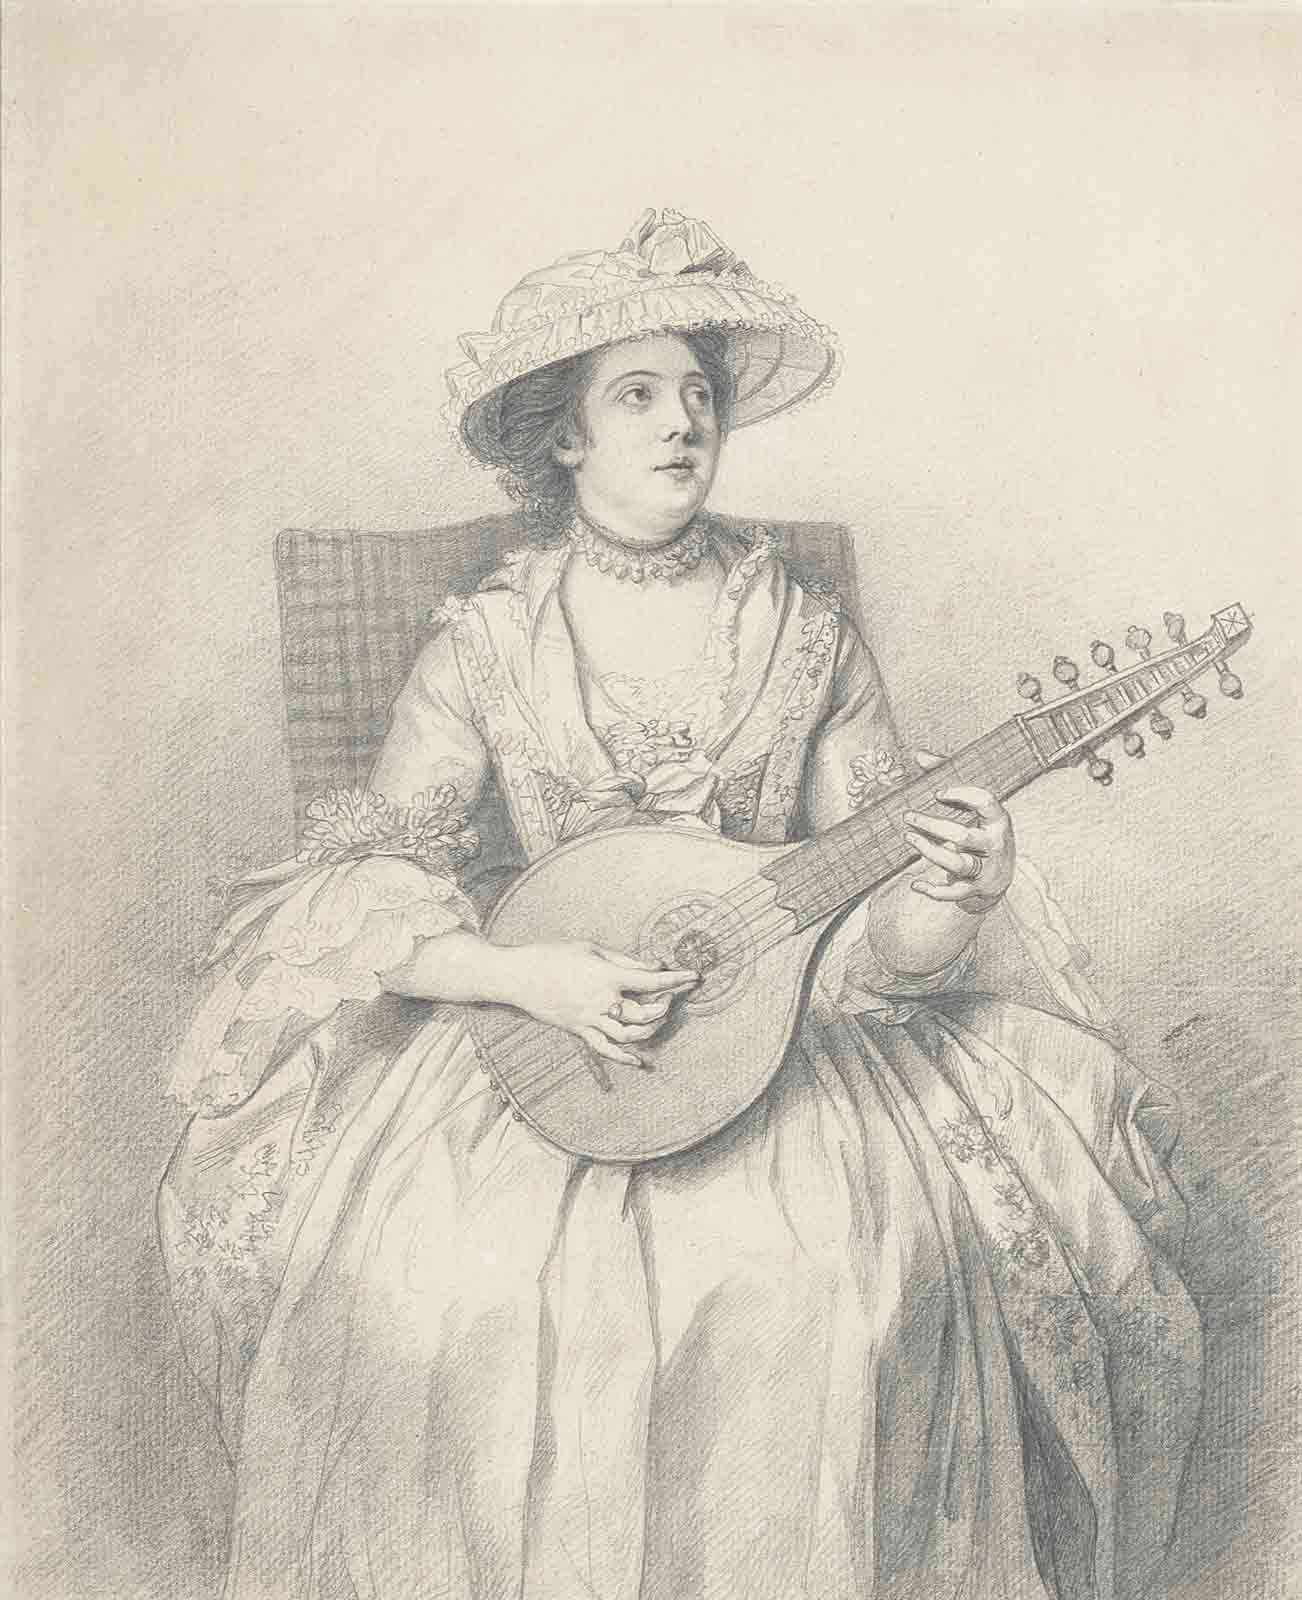 An elegant lady, seated, playing a cittern, looking upwards